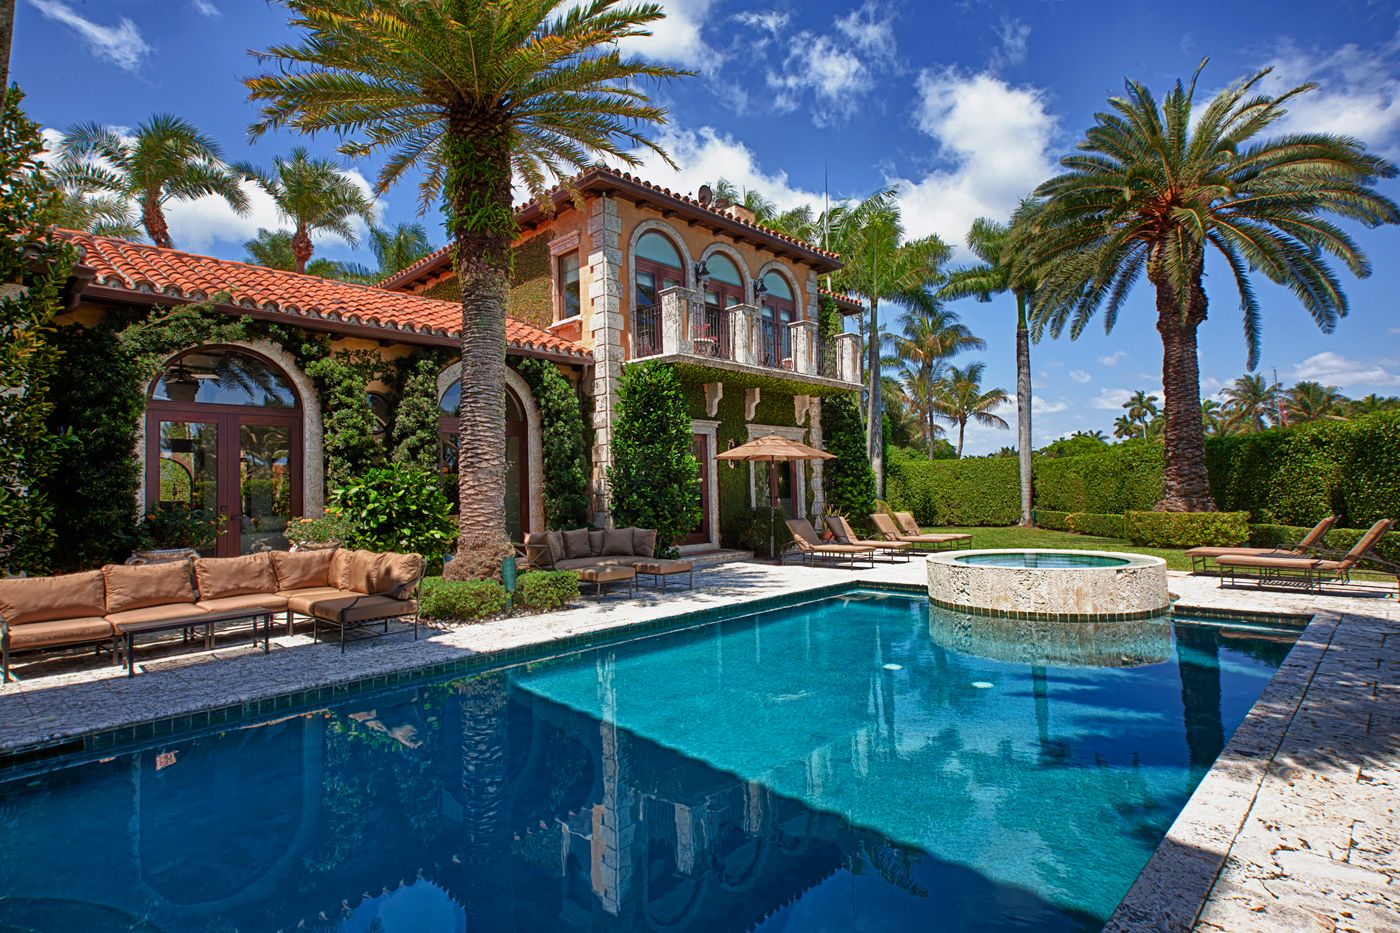 Real estate in miami beach wallpapers pinterest for Luxury houses in miami for sale